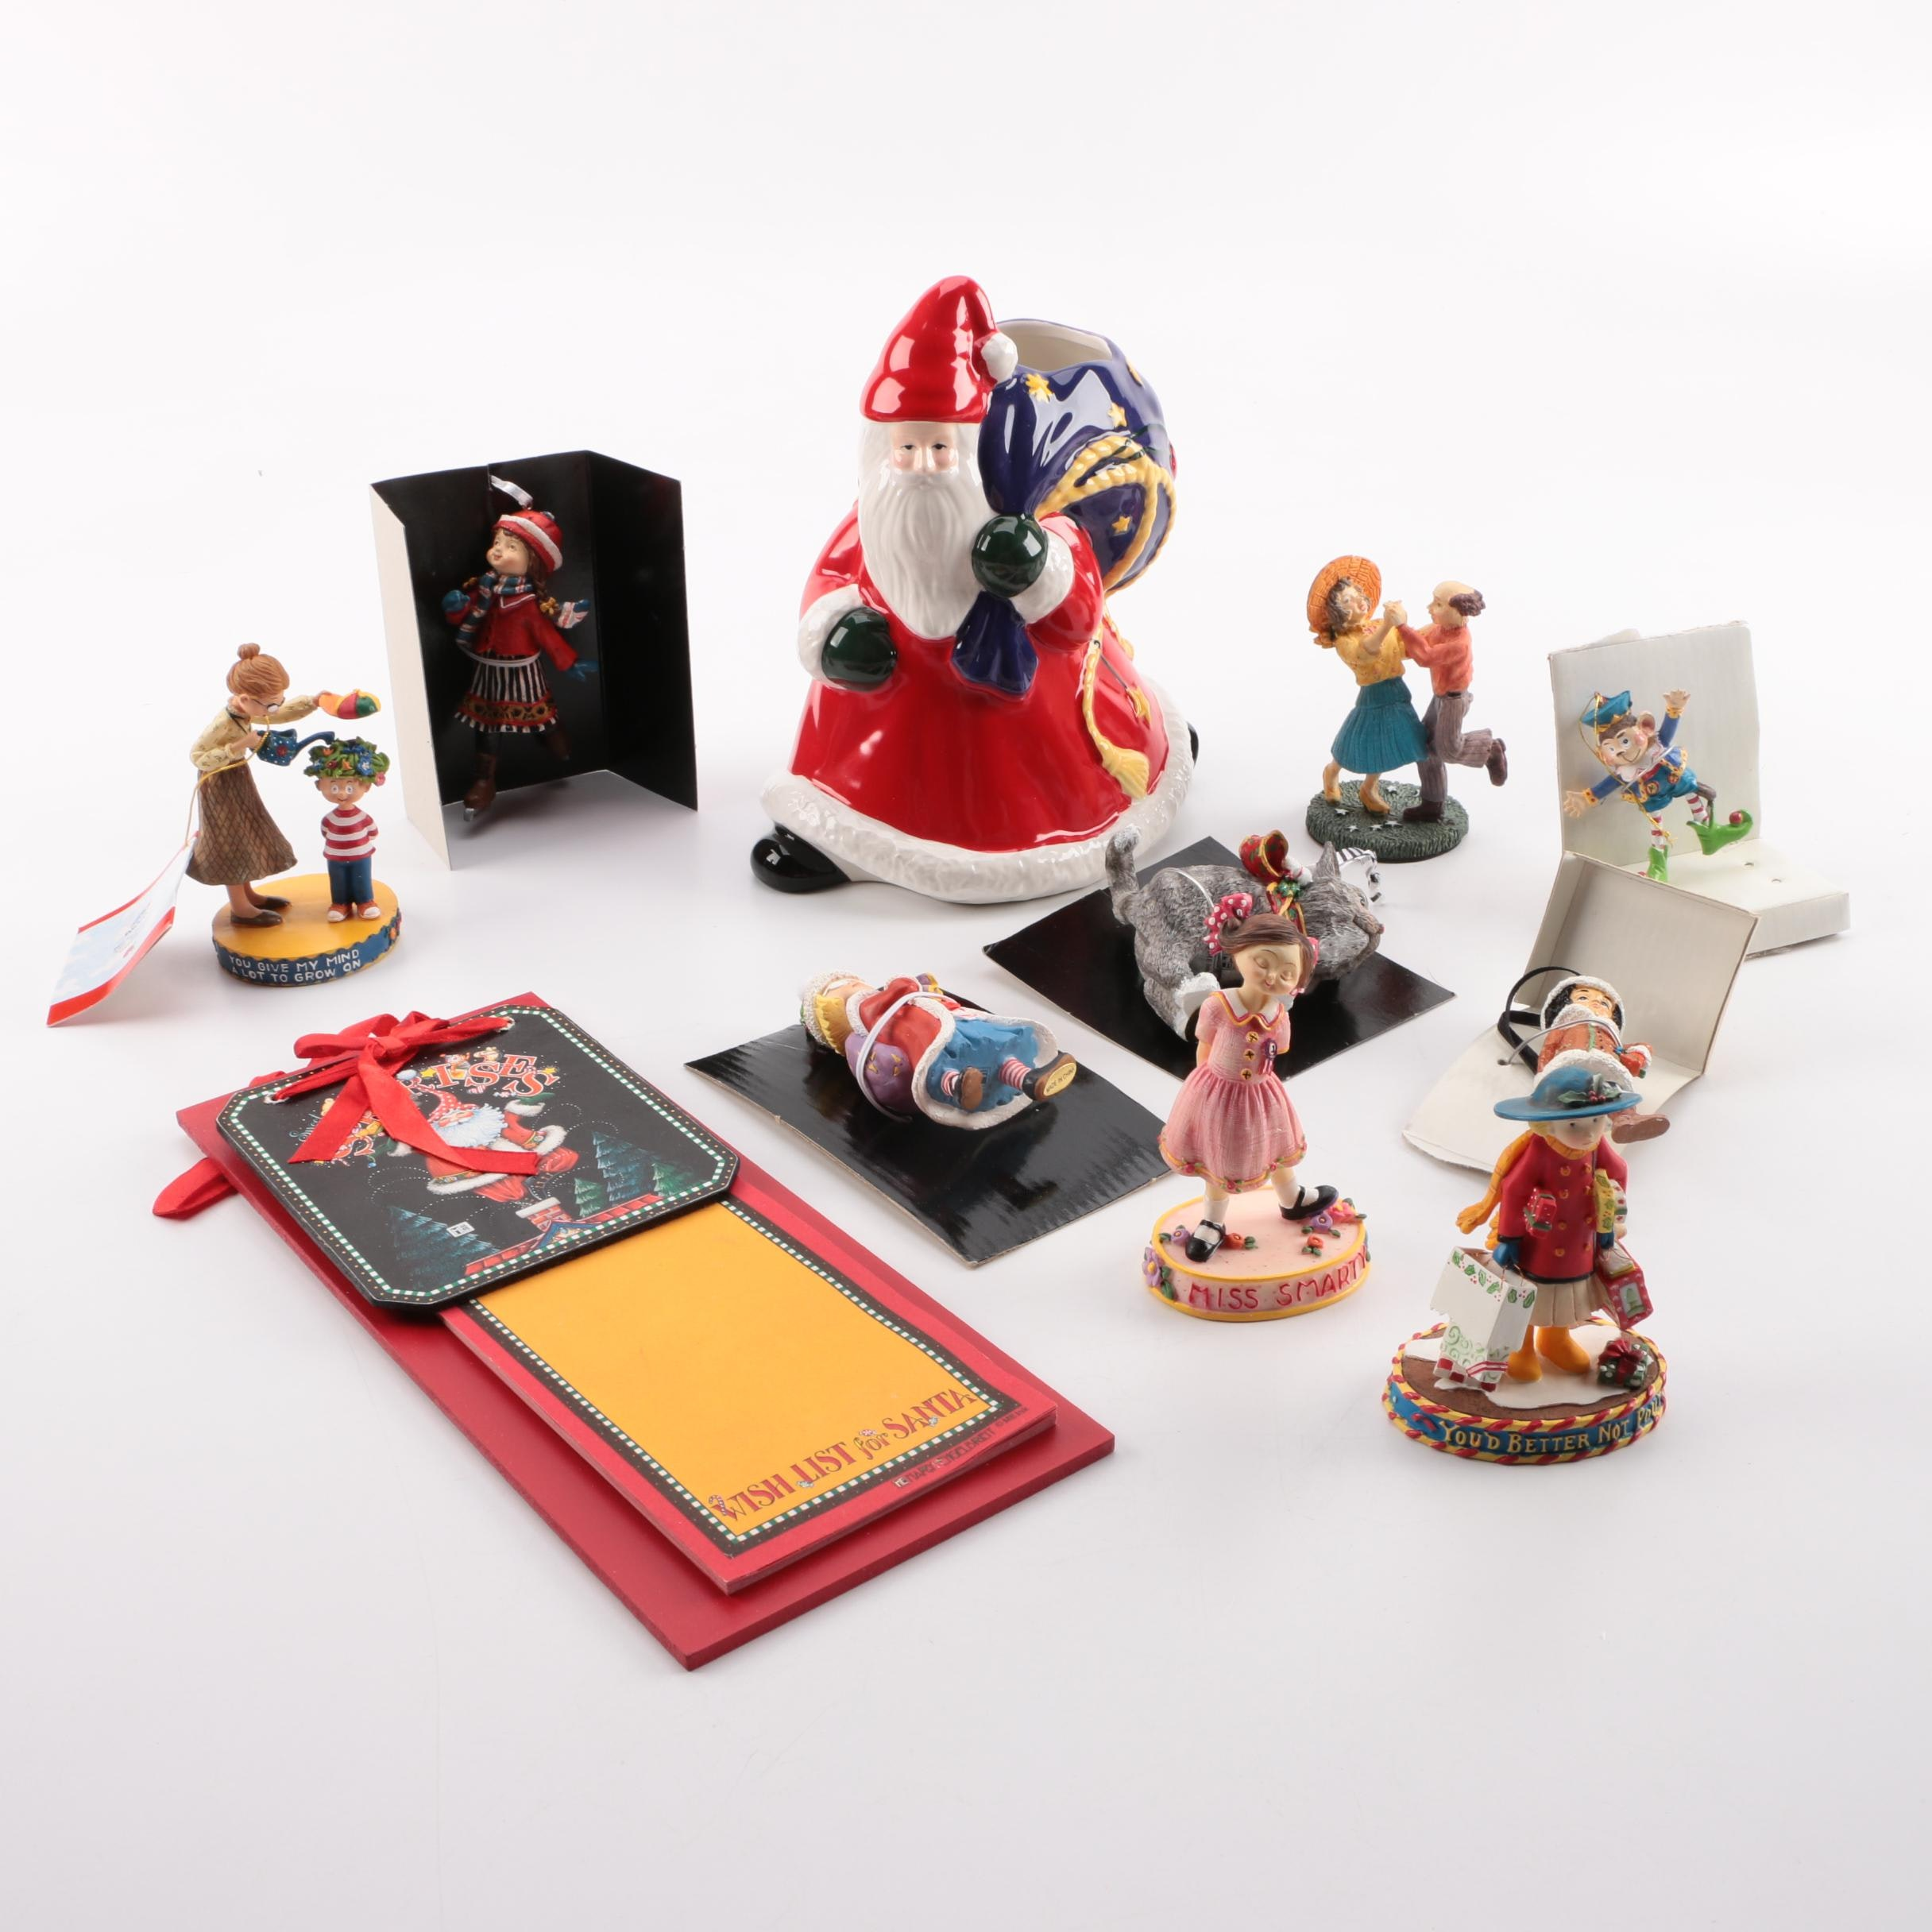 Mary Engelbreit Ornaments and Santa Figurine